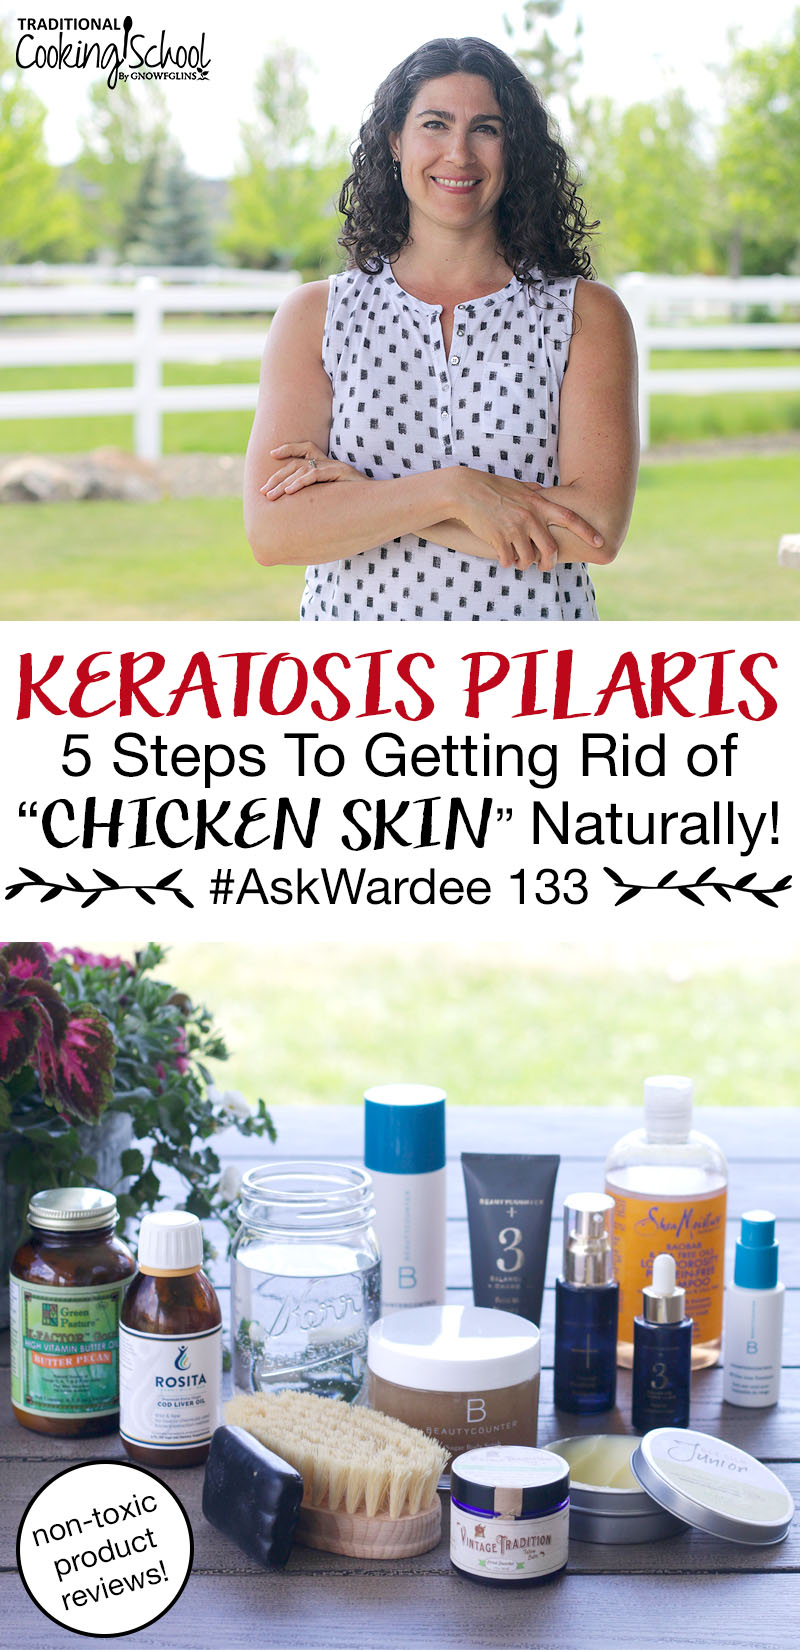 "photo collage of a smiling brunette standing outside and an array of many different non-toxic products on a picnic table, including cod liver oil, tallow balm, Shea Moisture shampoo, BeautyCounter products, a dry brush, etc., with text overlay: ""Keratosis Pilaris: 5 Steps To Getting Rid Of ""Chicken Skin"" Naturally #AskWardee 133 (non-toxic product reviews!)"""